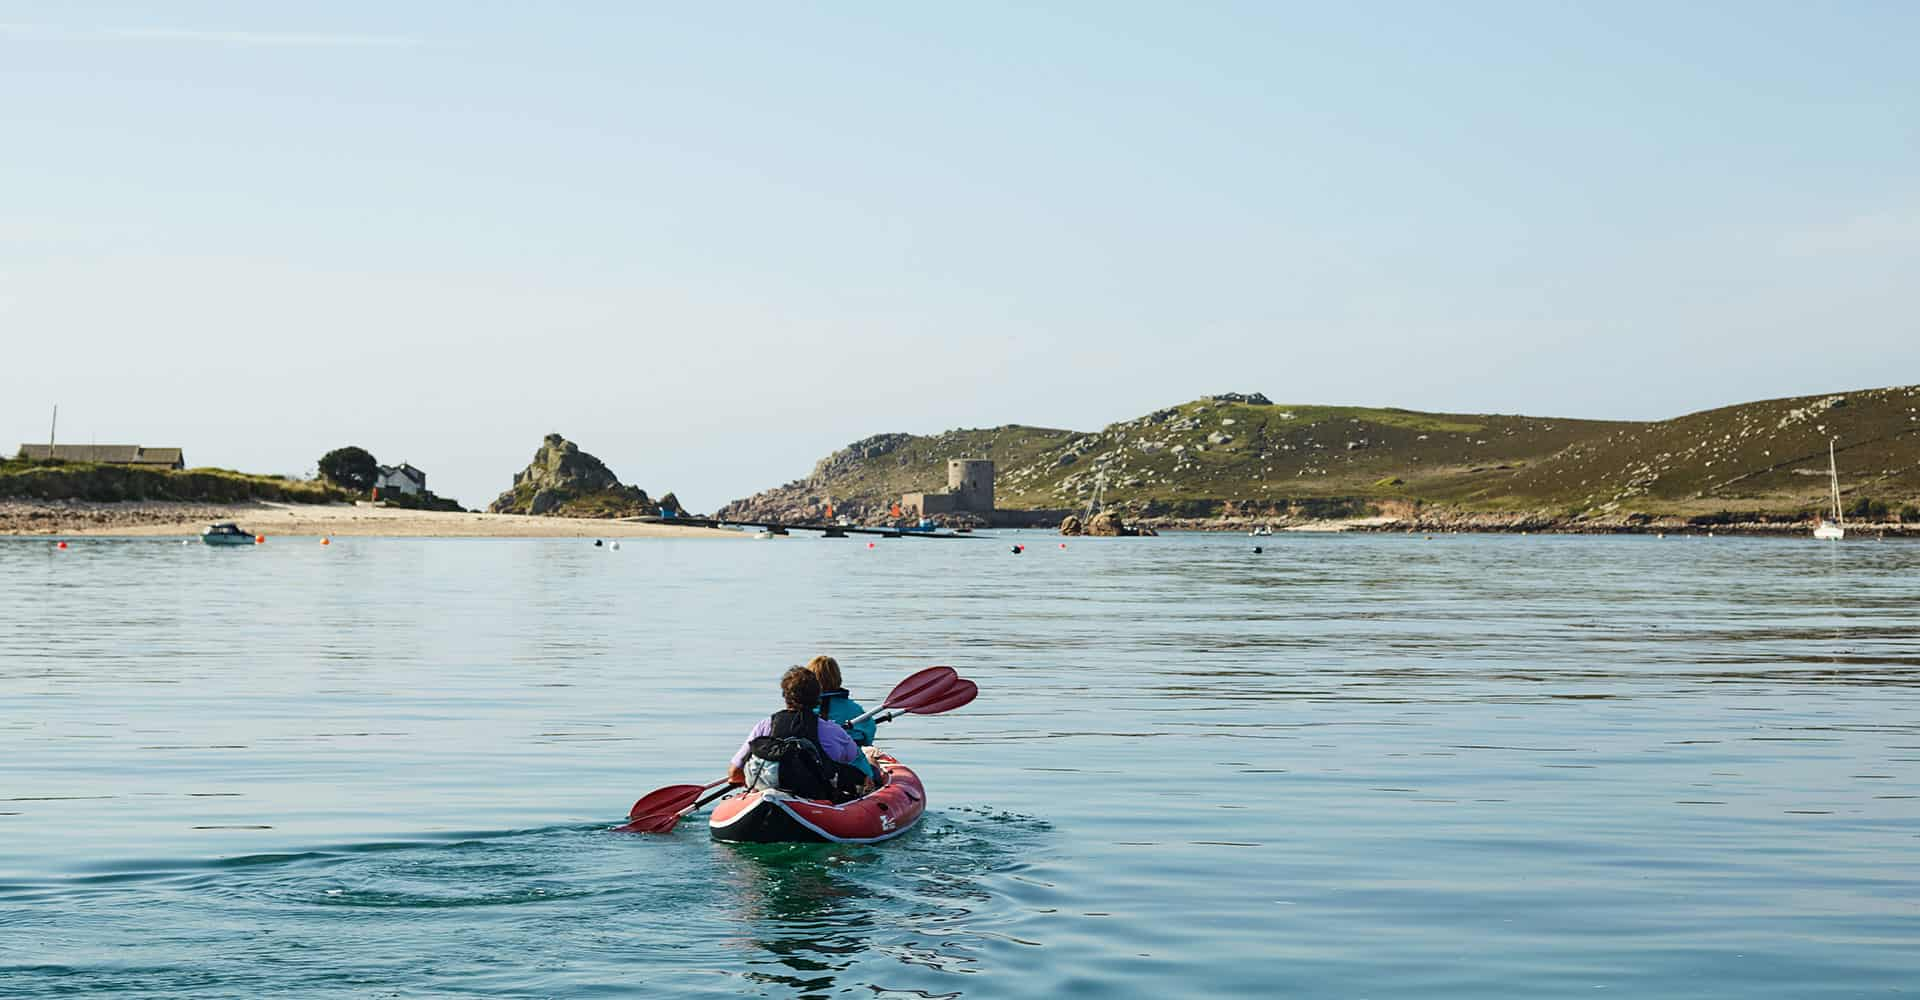 Kayak Hire - water sports  - Day Trip Ideas to the Isles of Scilly